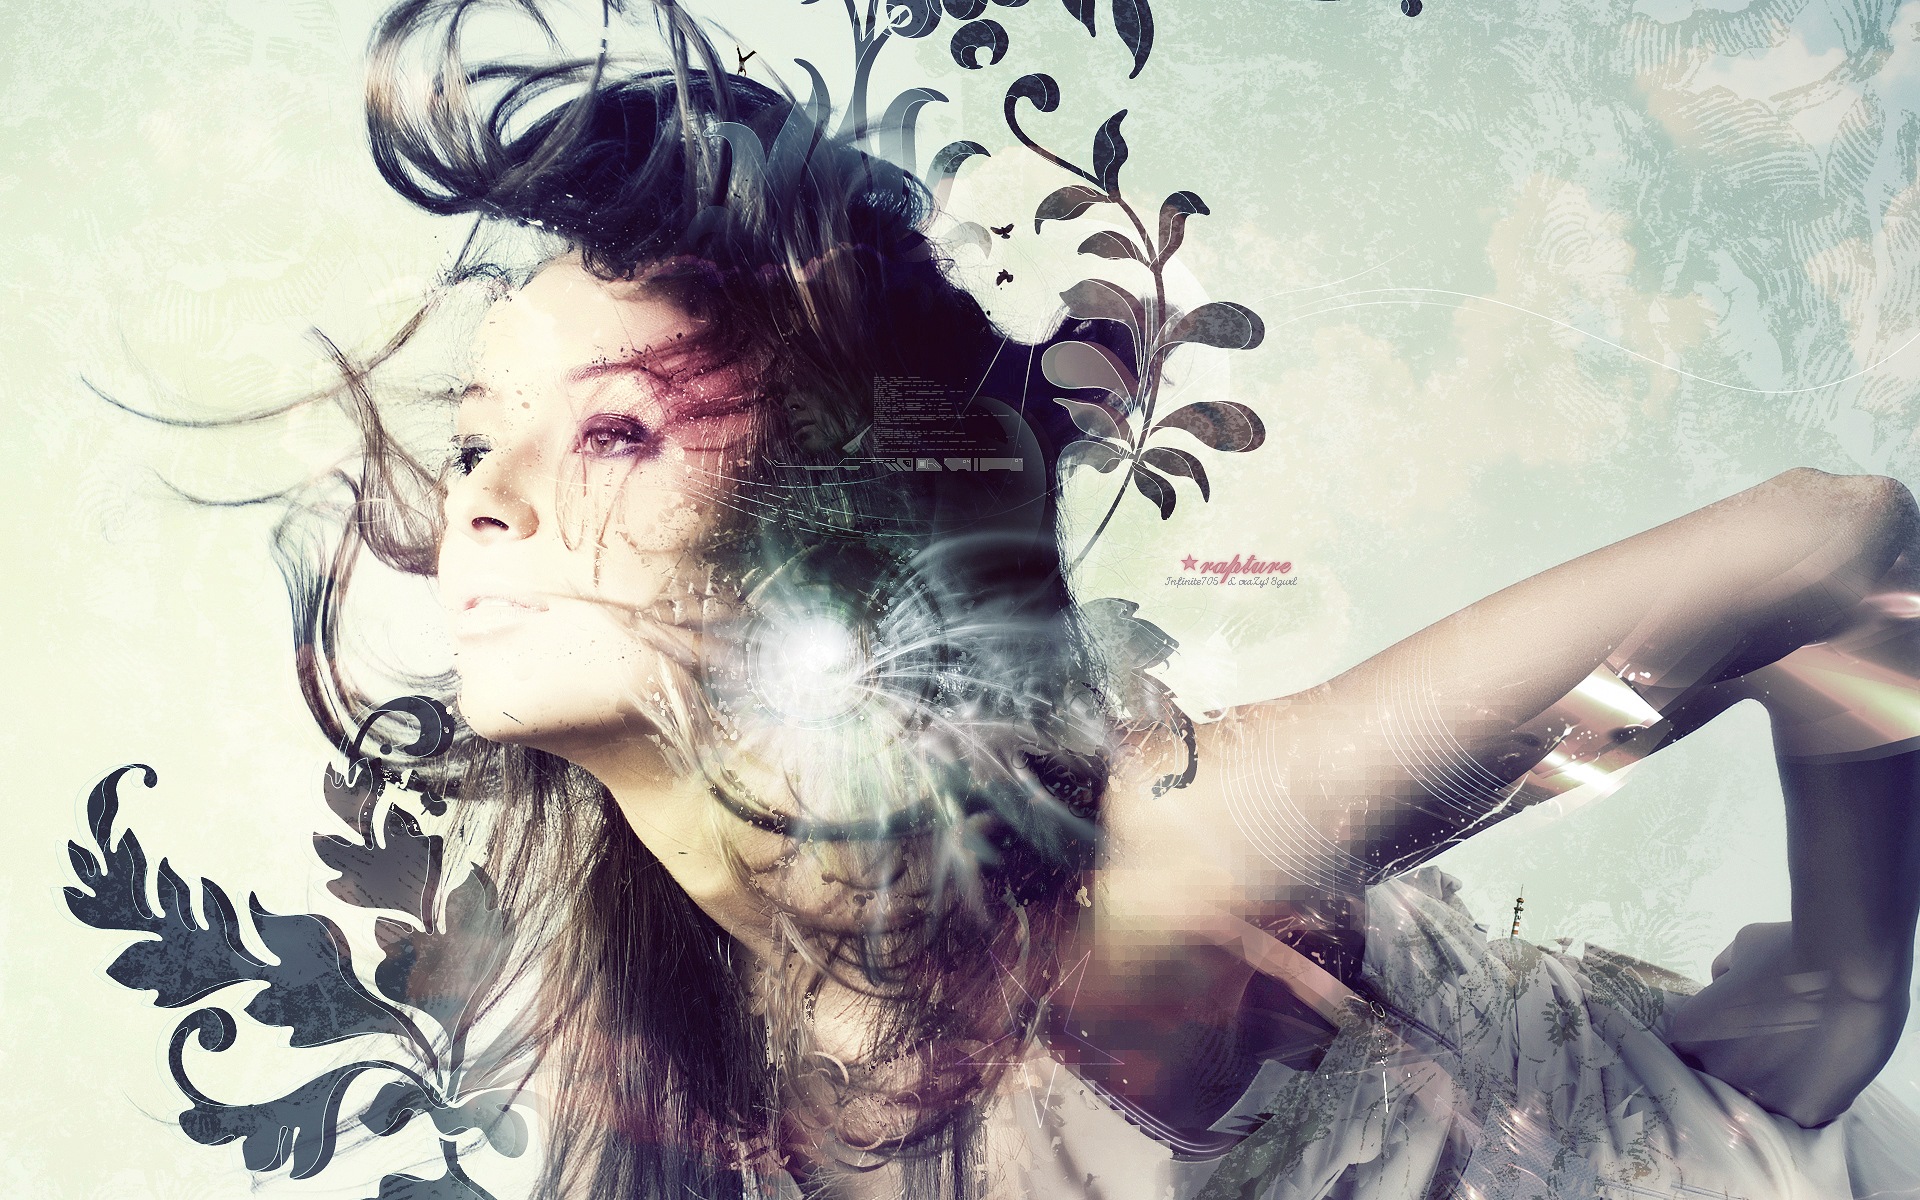 General 1920x1200 women photo manipulation brunette digital art artwork abstract model shapes